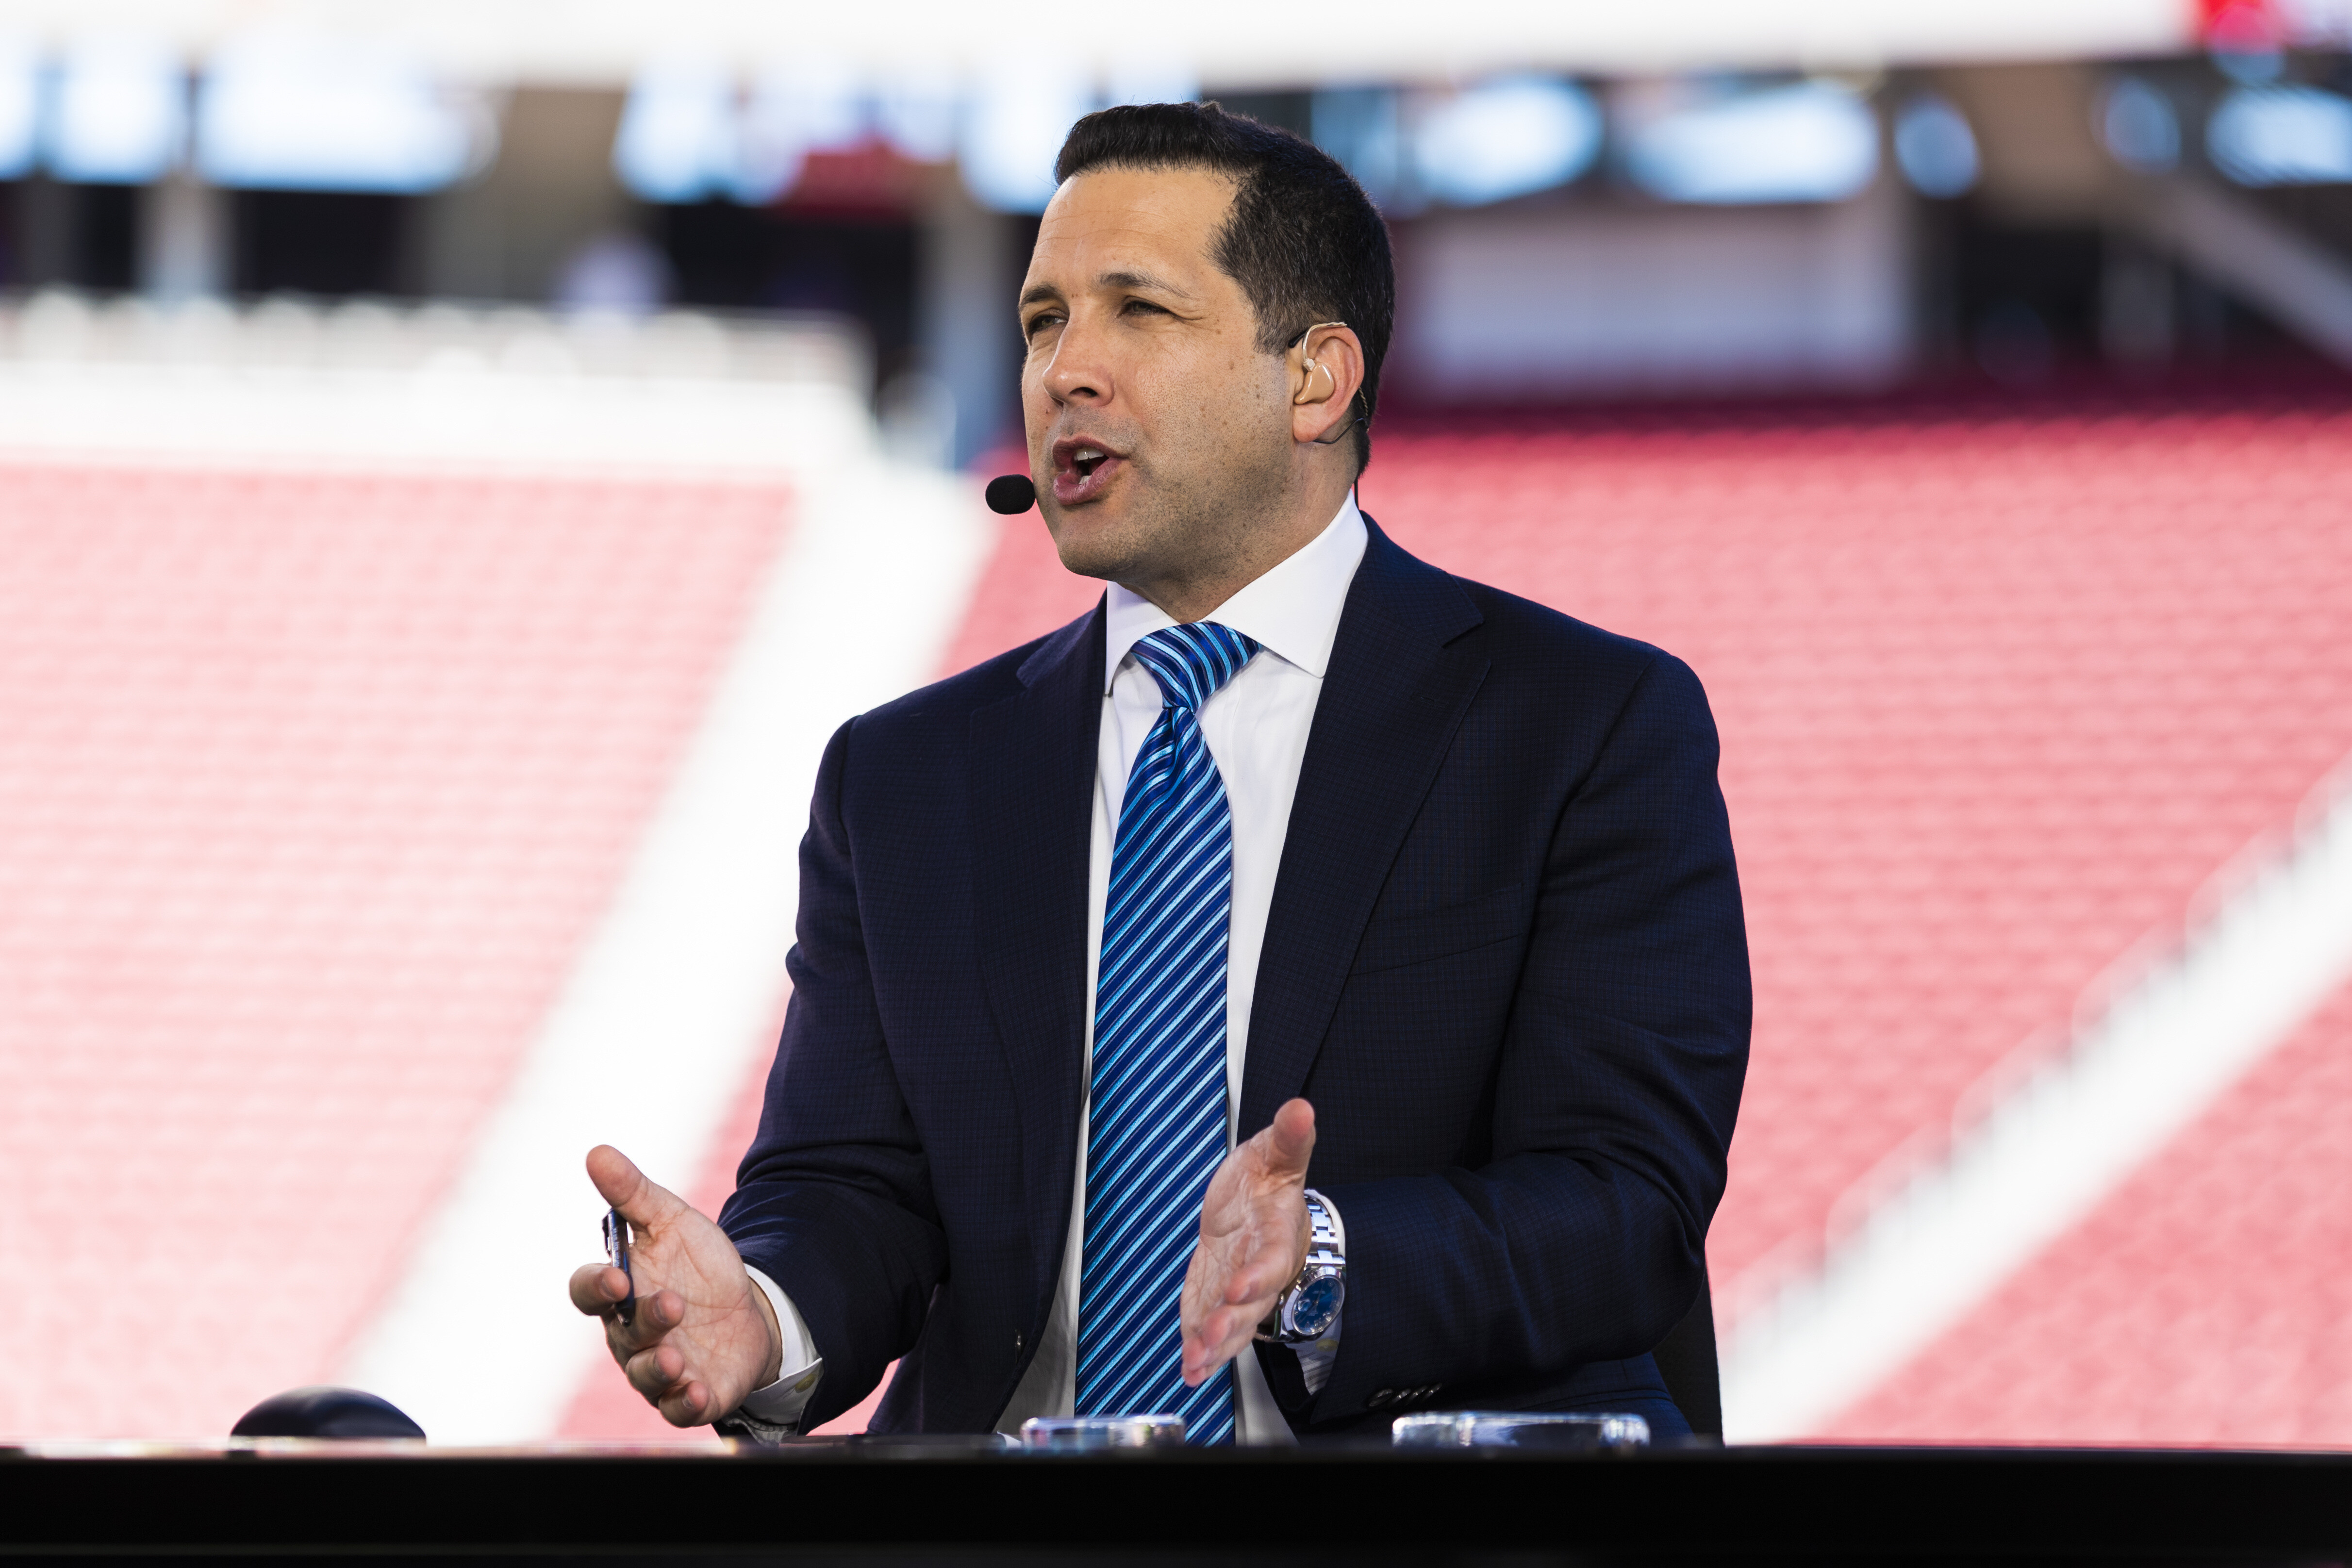 ESPN reporter sought approval from former Washington Football Team exec Bruce Allen on unpublished story